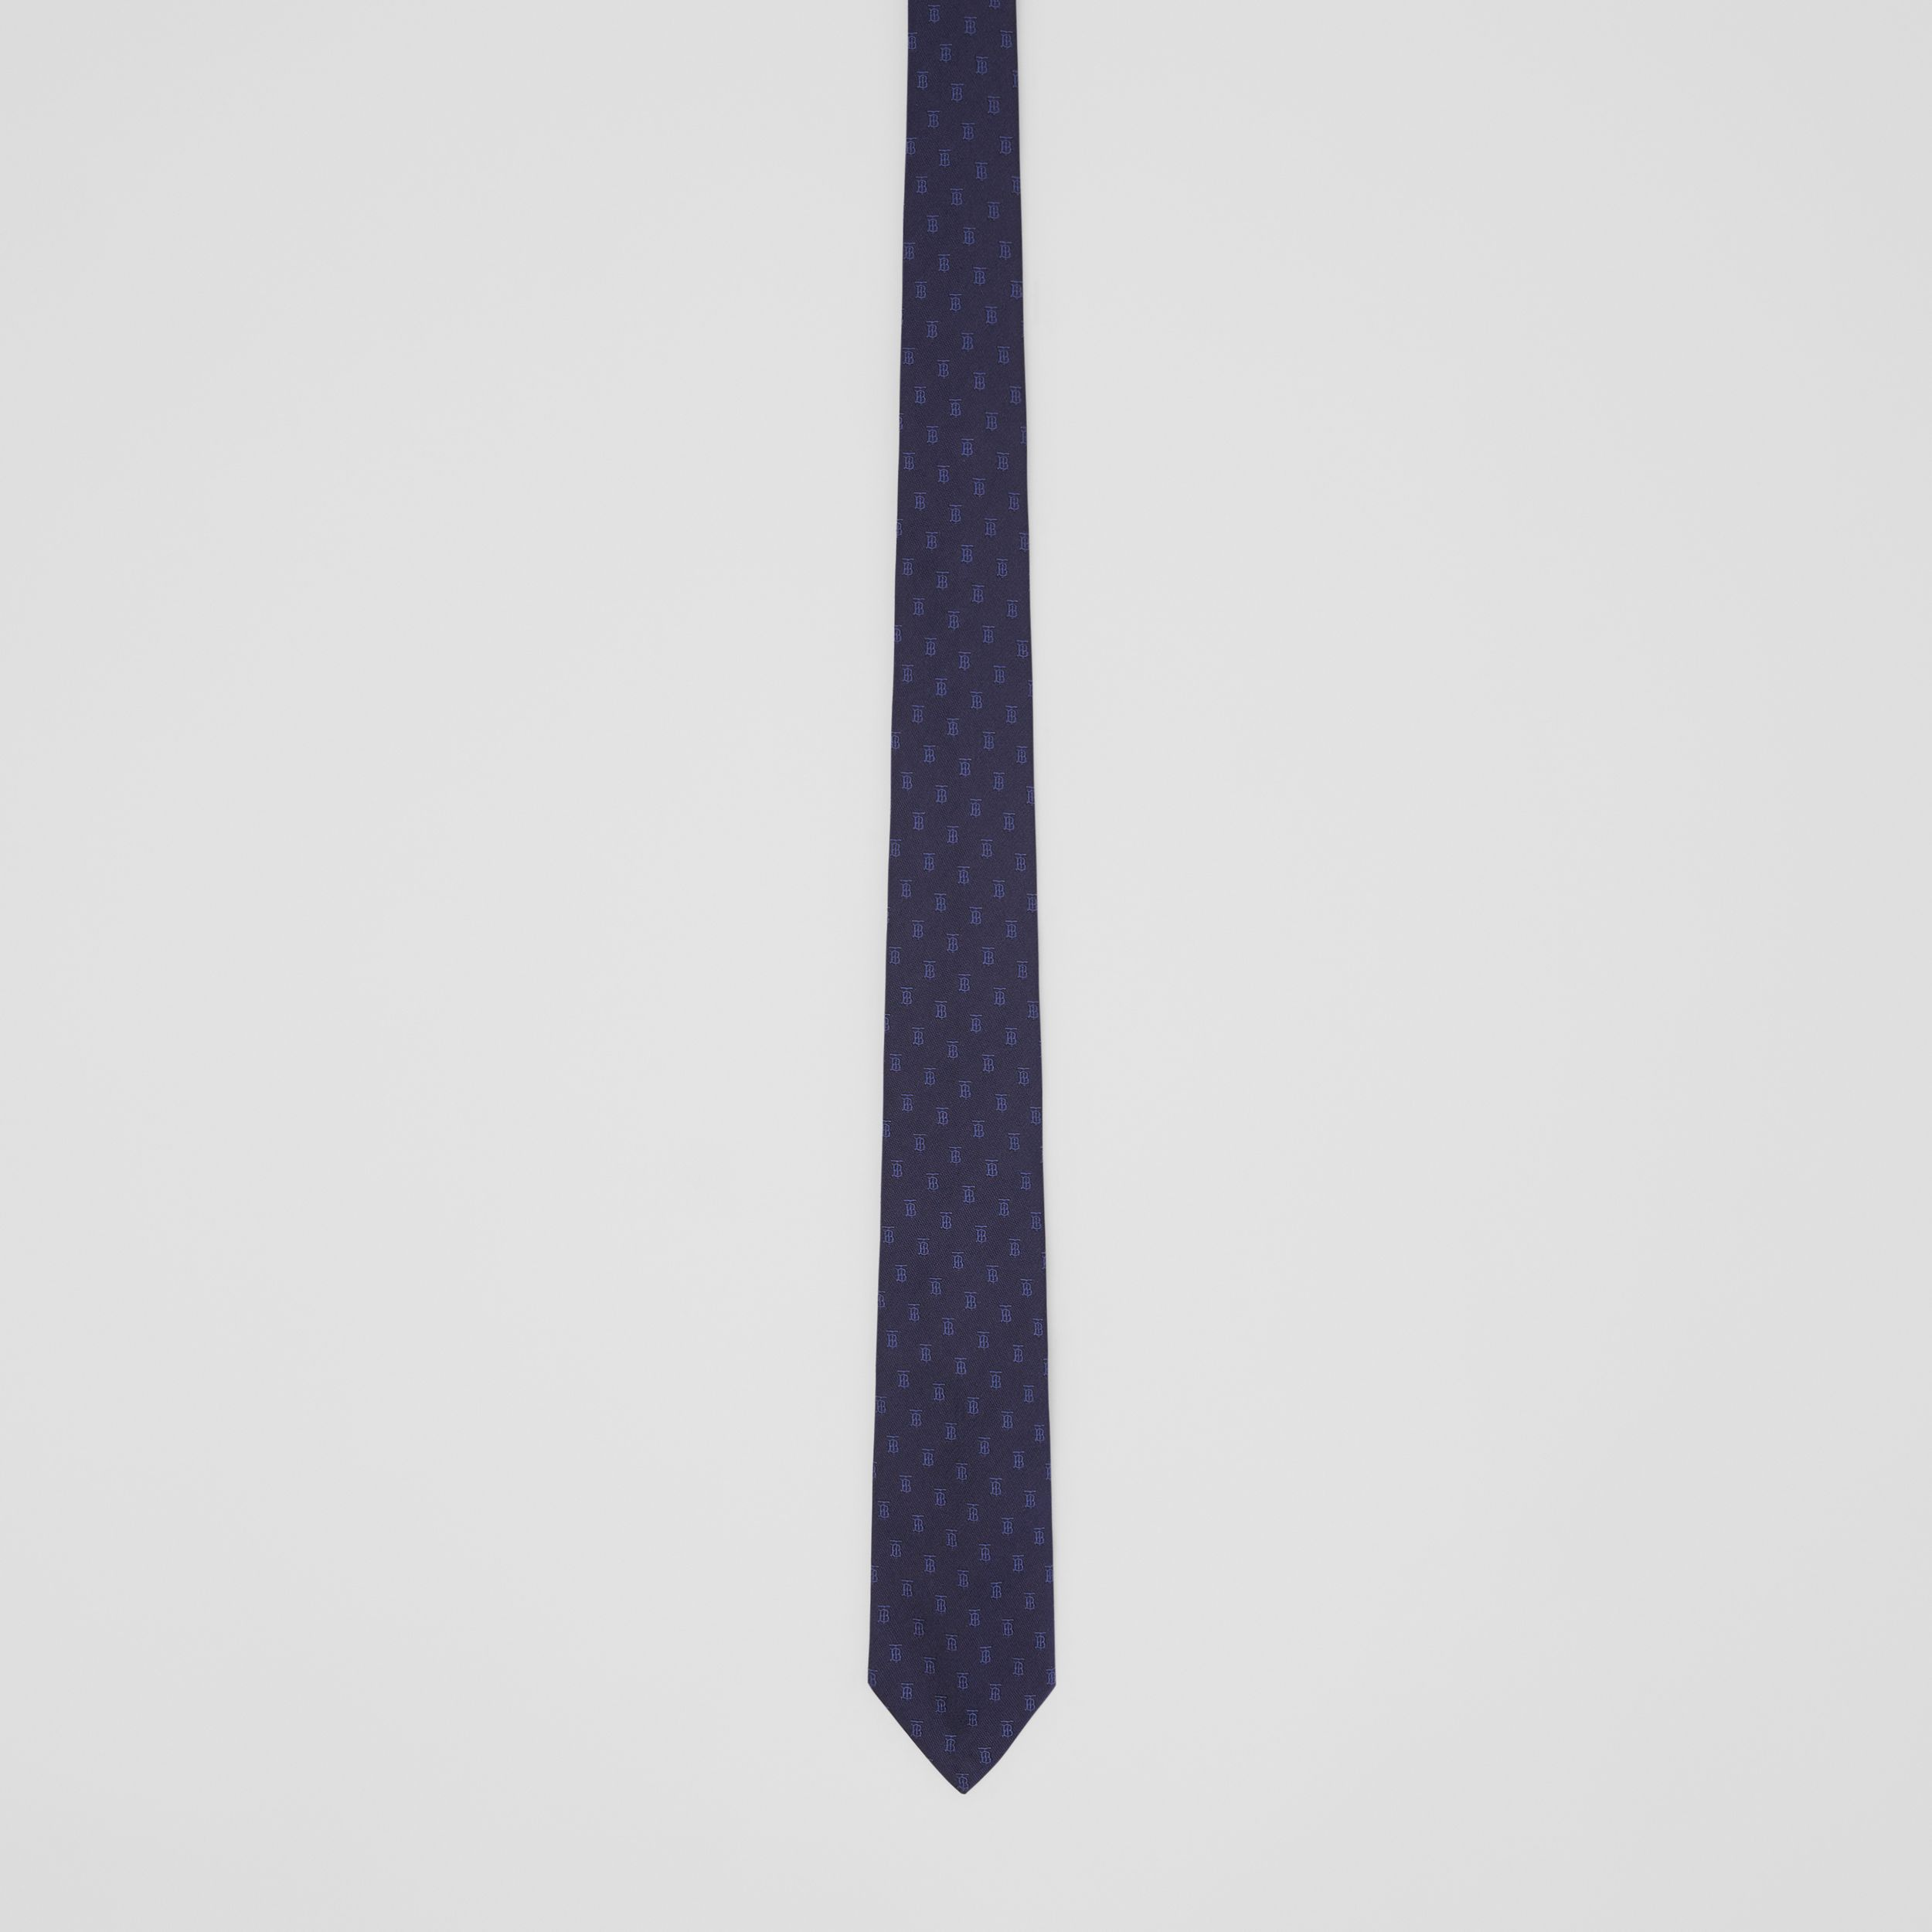 Classic Cut Monogram Motif Silk Jacquard Tie in Navy - Men | Burberry Canada - 4